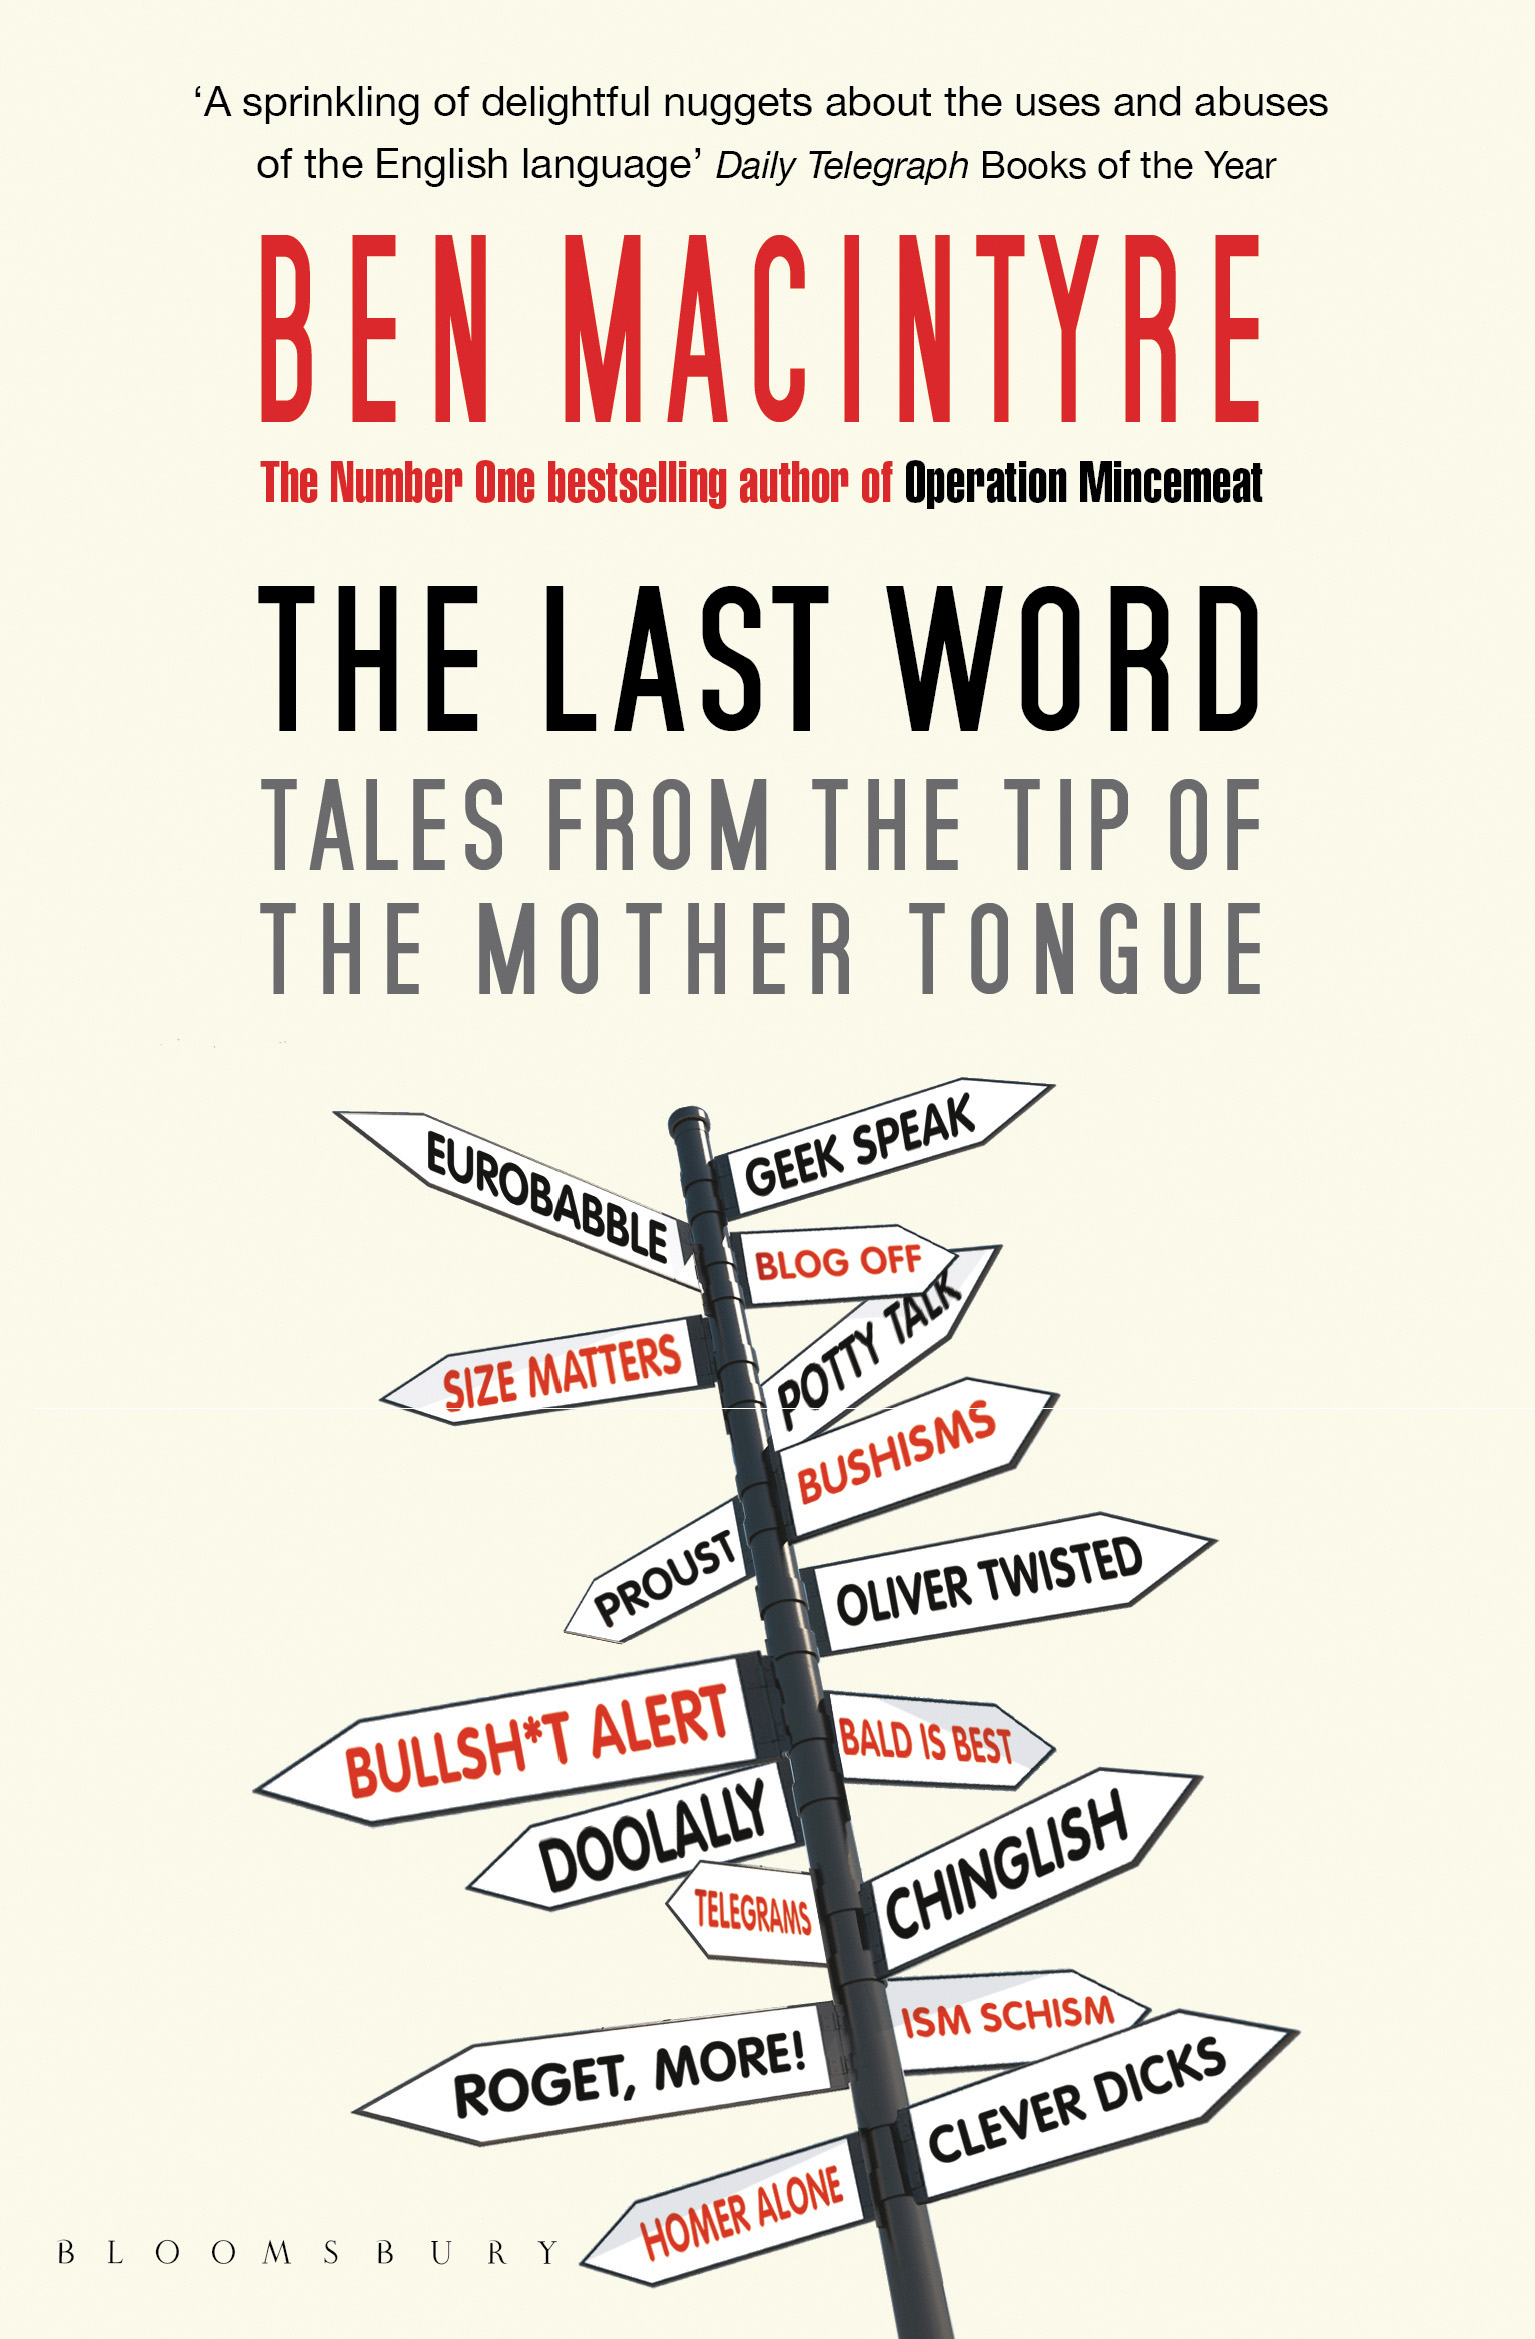 The Last Word Tales from the Tip of the Mother Tongue